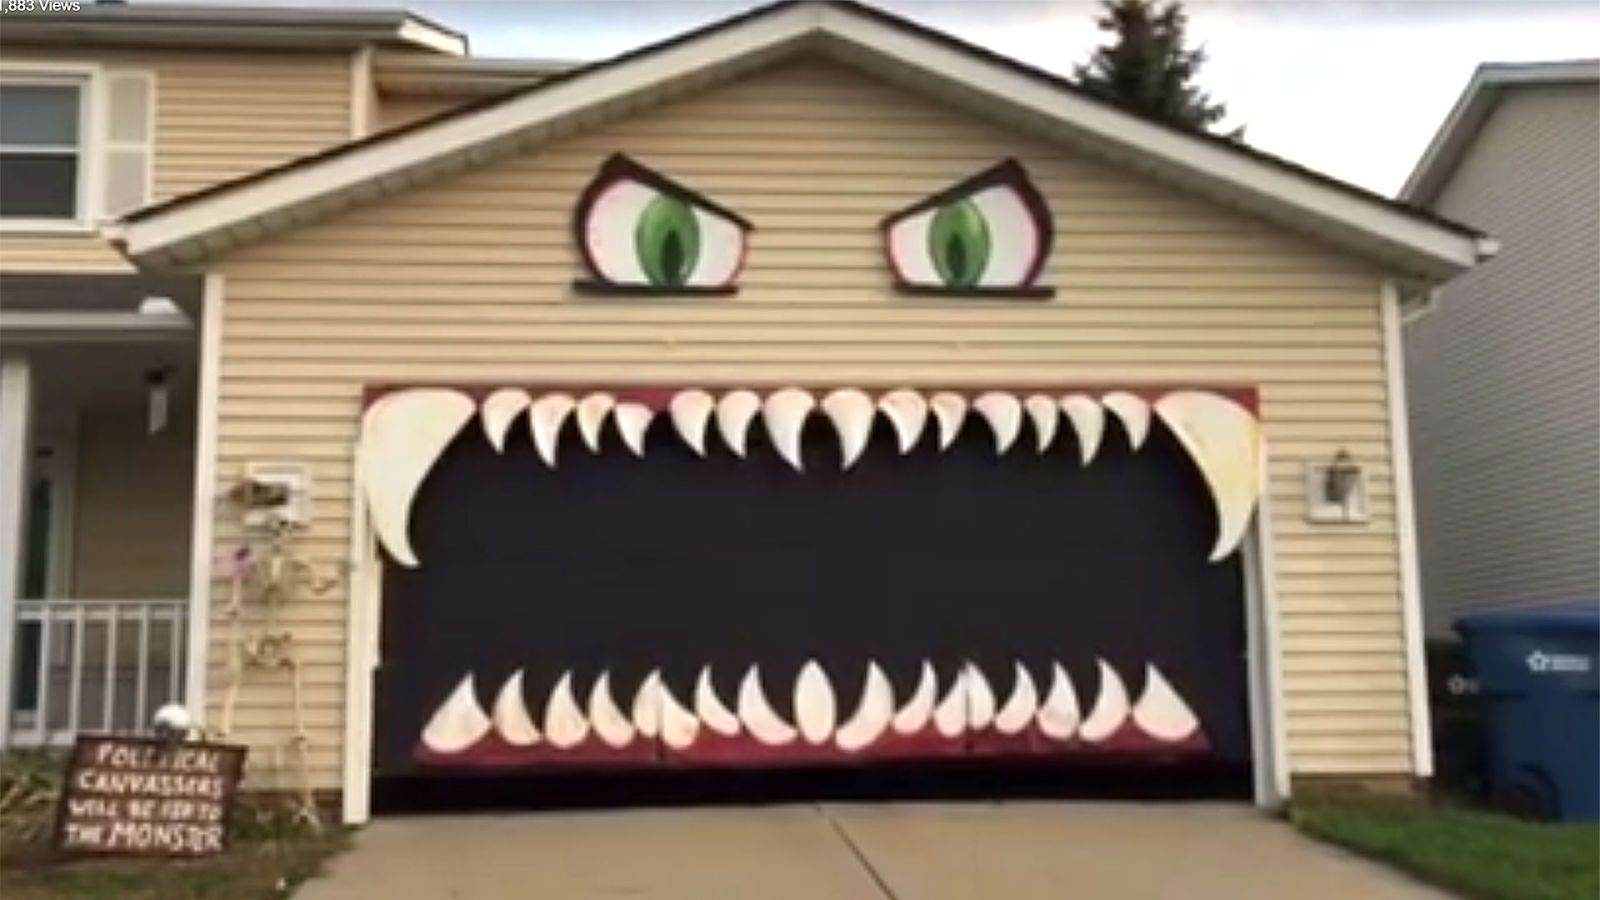 This Clever Halloween Idea Will Make You Want to Be *That* Neighbor - Halloween Garage Door Decorations